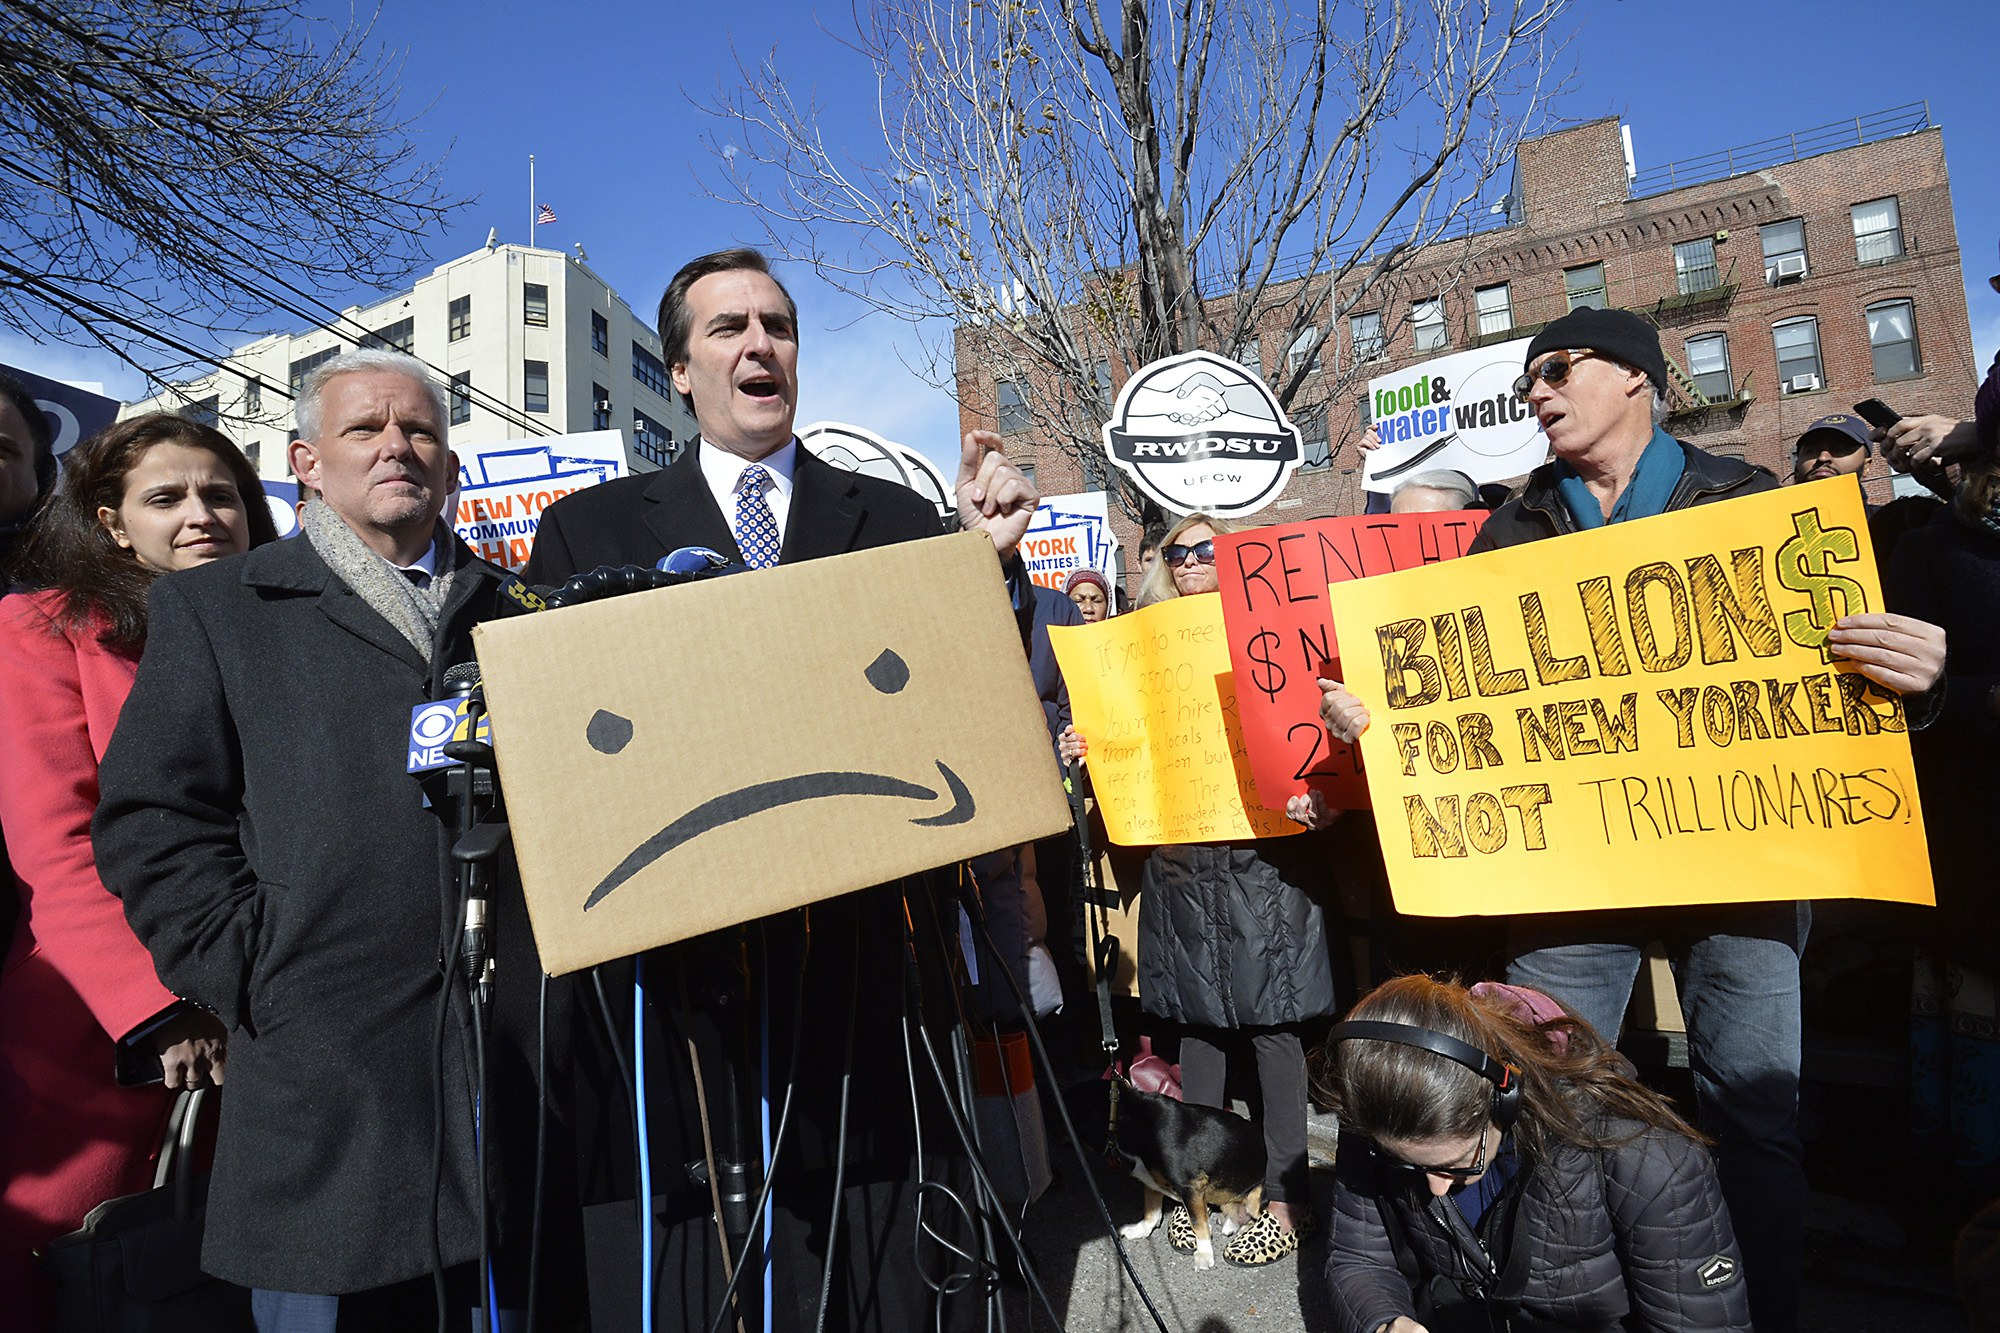 Protests against Amazon's $3 billion deal with New York fall on deaf ears